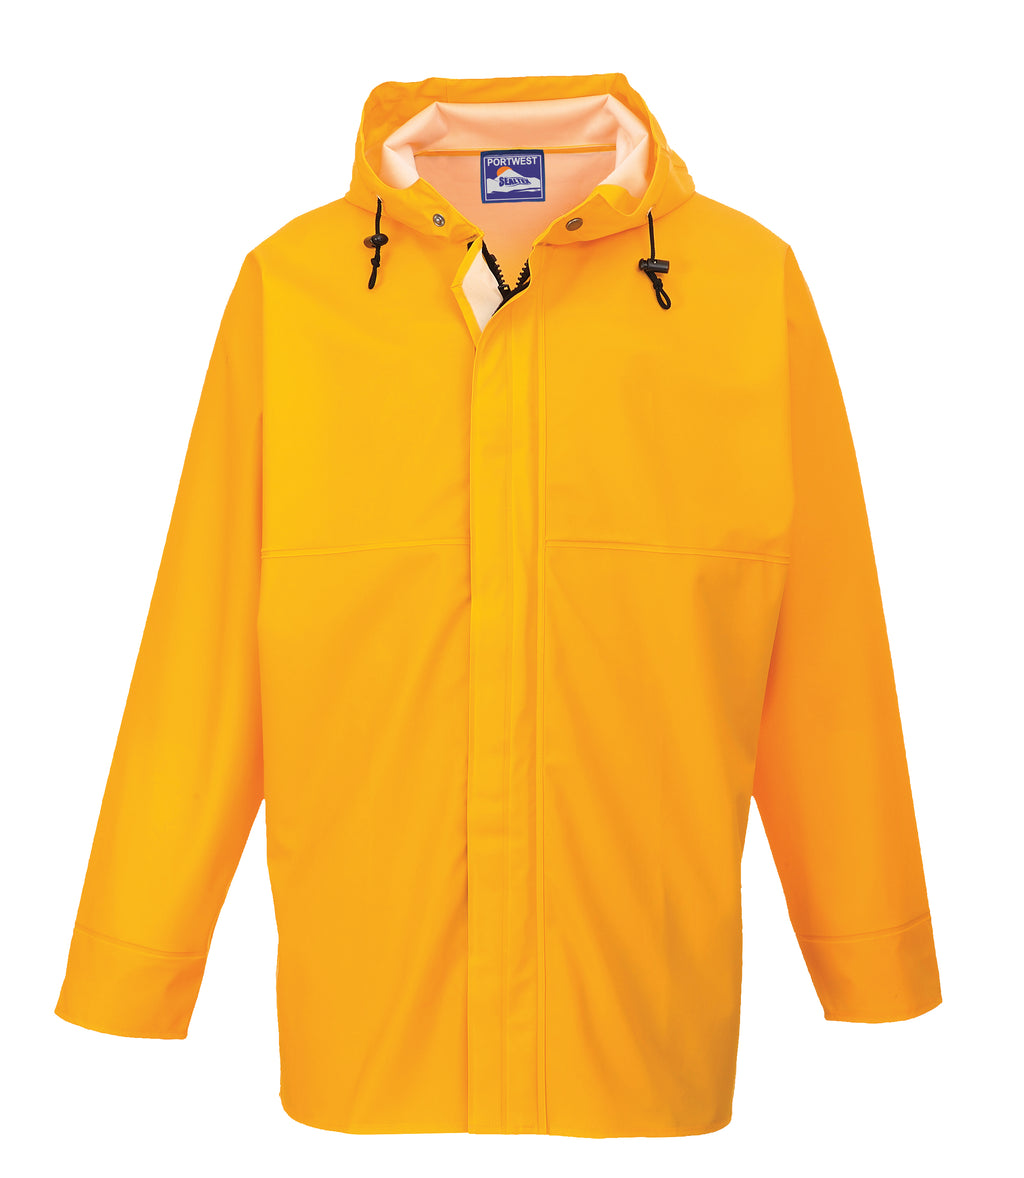 Portwest S250 Sealtex Waterproof Safety Ocean Jacket with Stormflap & Hood